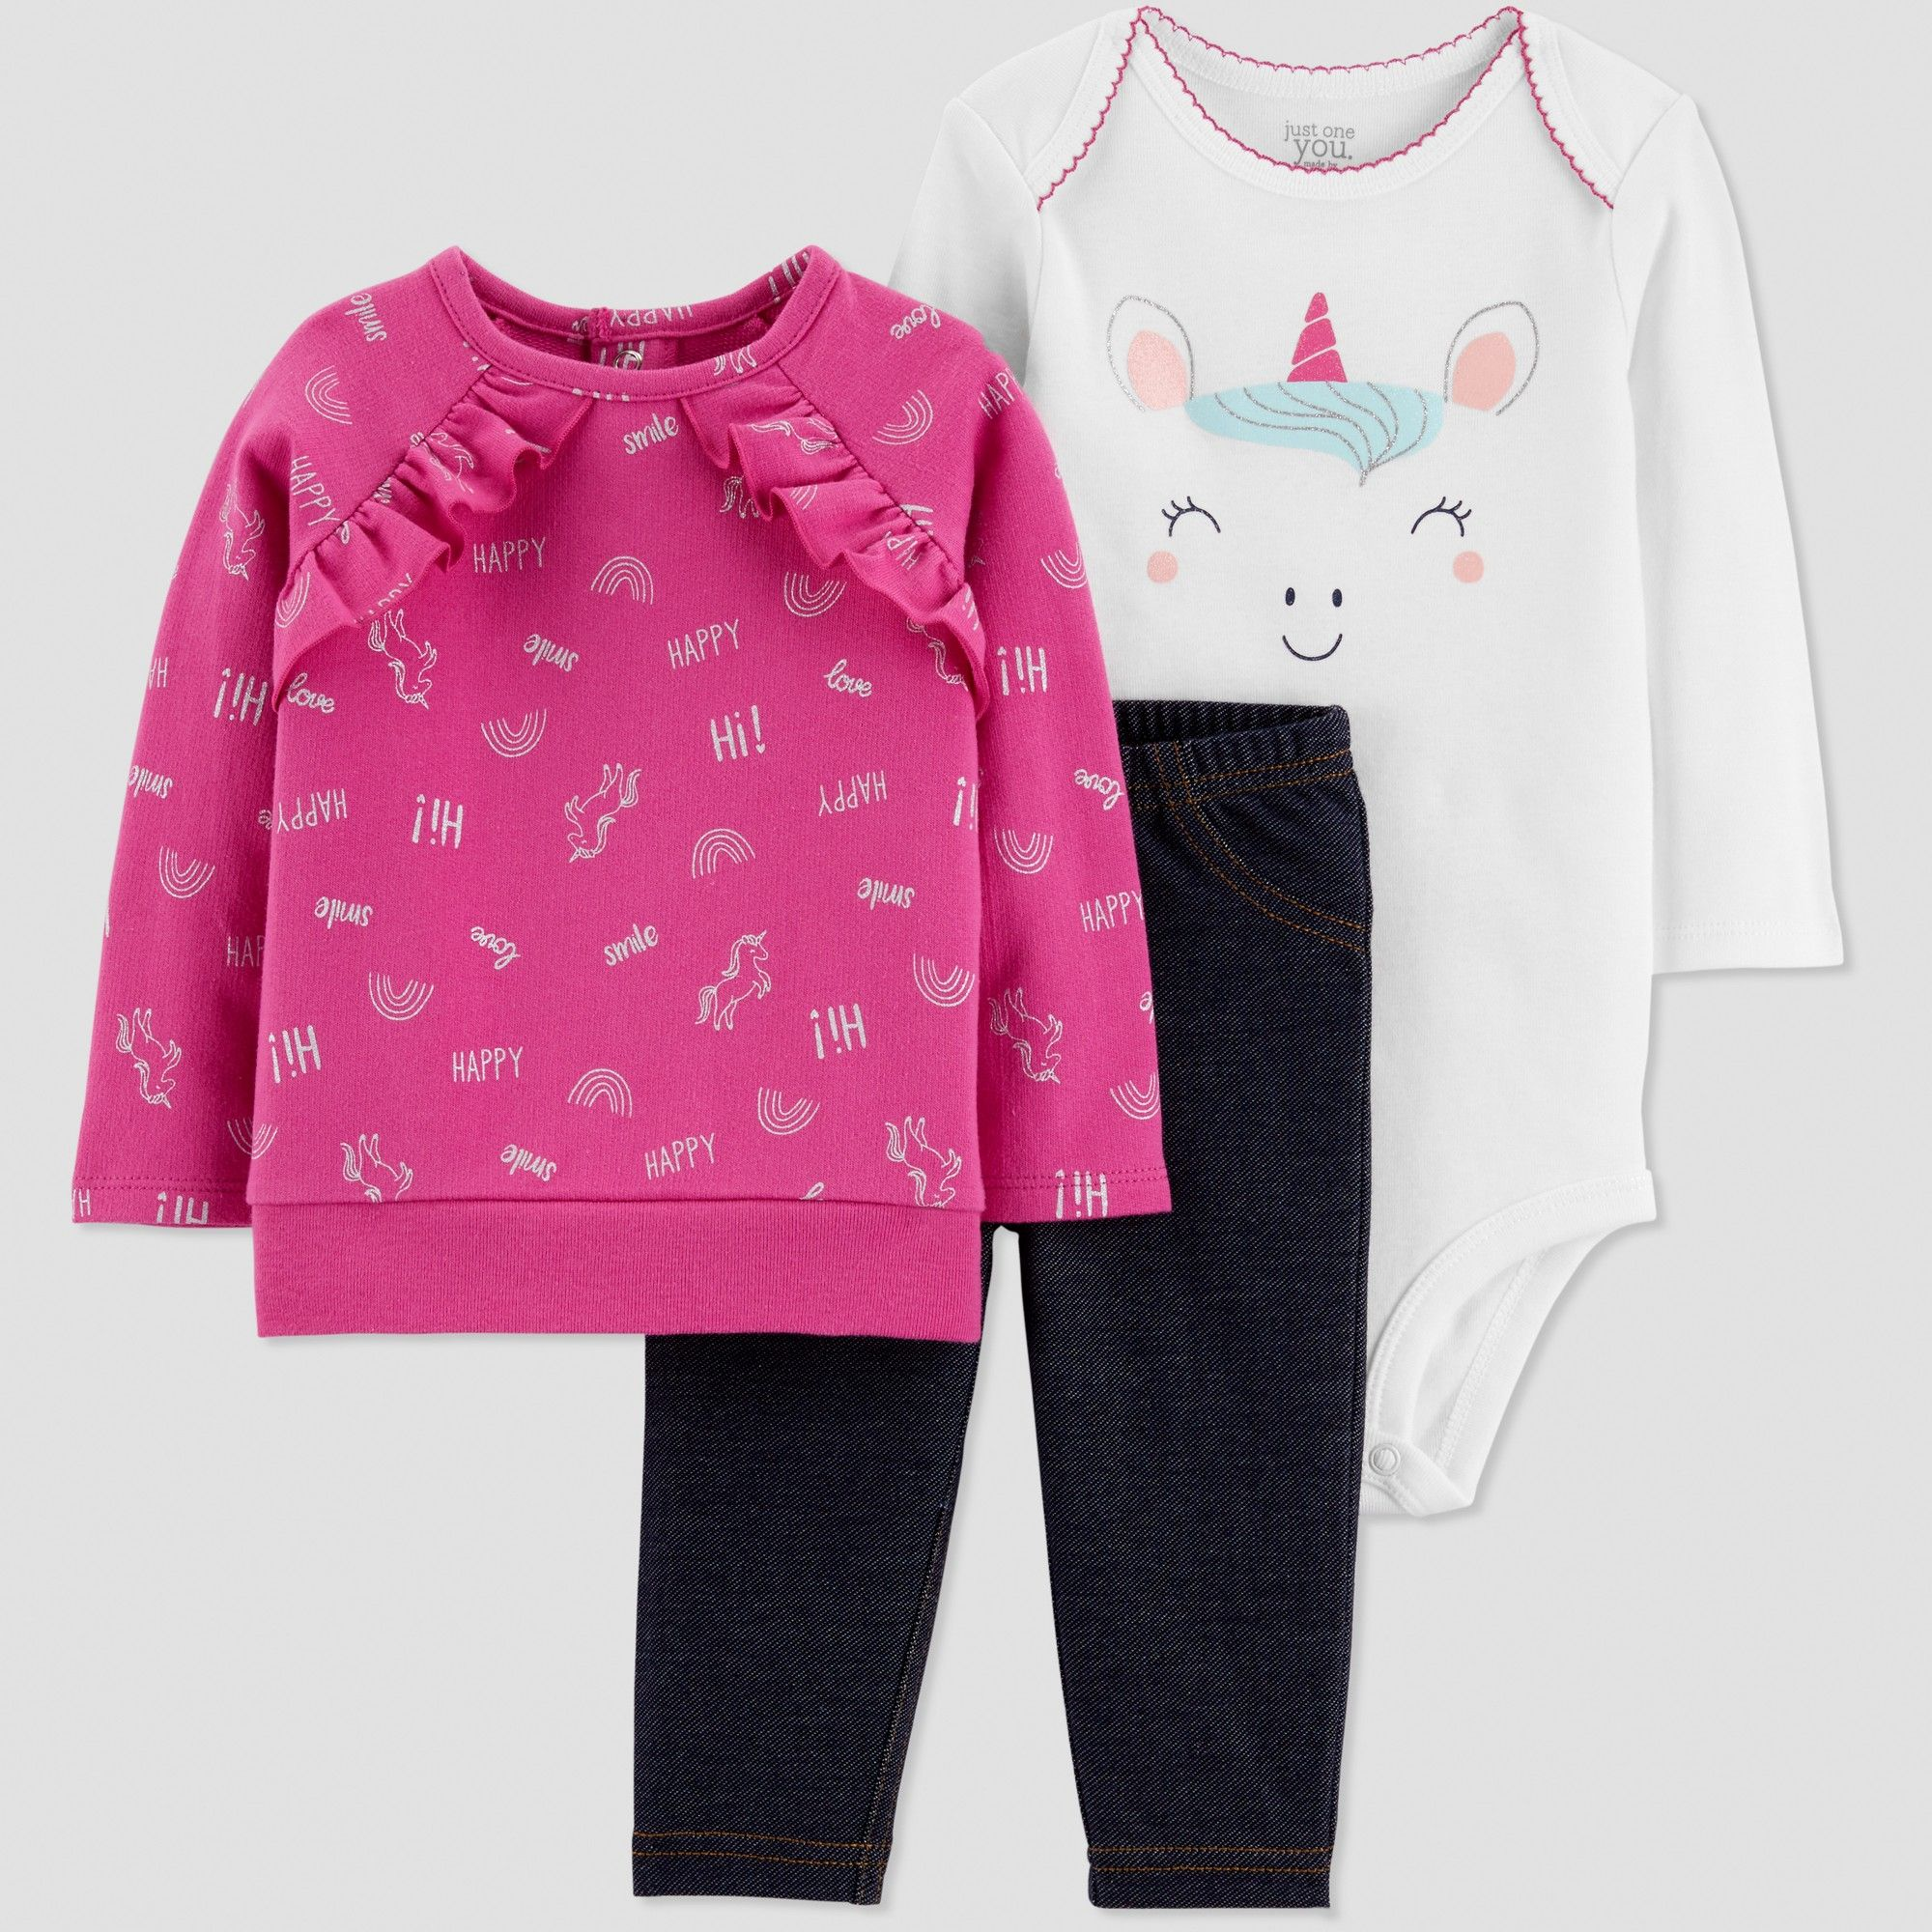 7b202dced812 Baby Girls' 3pc French Terry Unicorn Set - Just One You made by ...